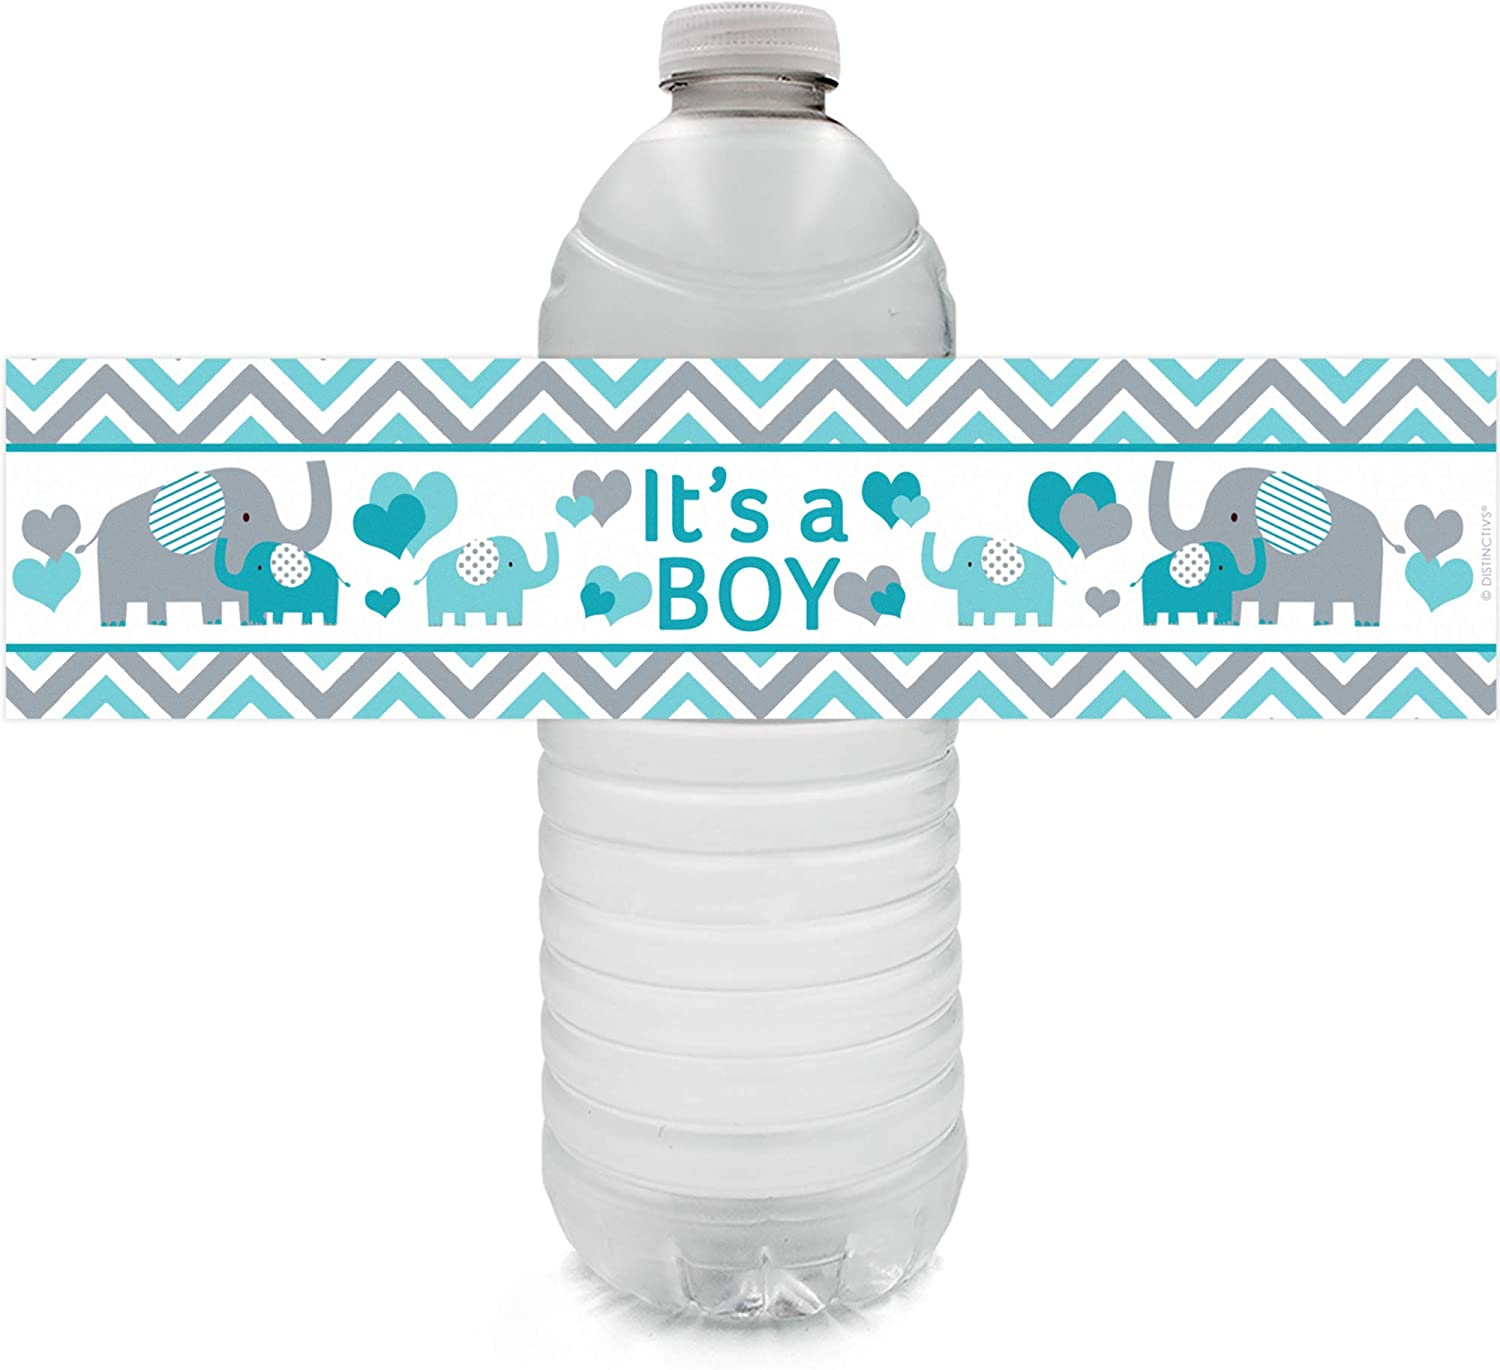 Teal Blue Cheap sale Elephant Boy Baby Shower ! Super beauty product restock quality top! Water Labels Bottle Stic 24 -